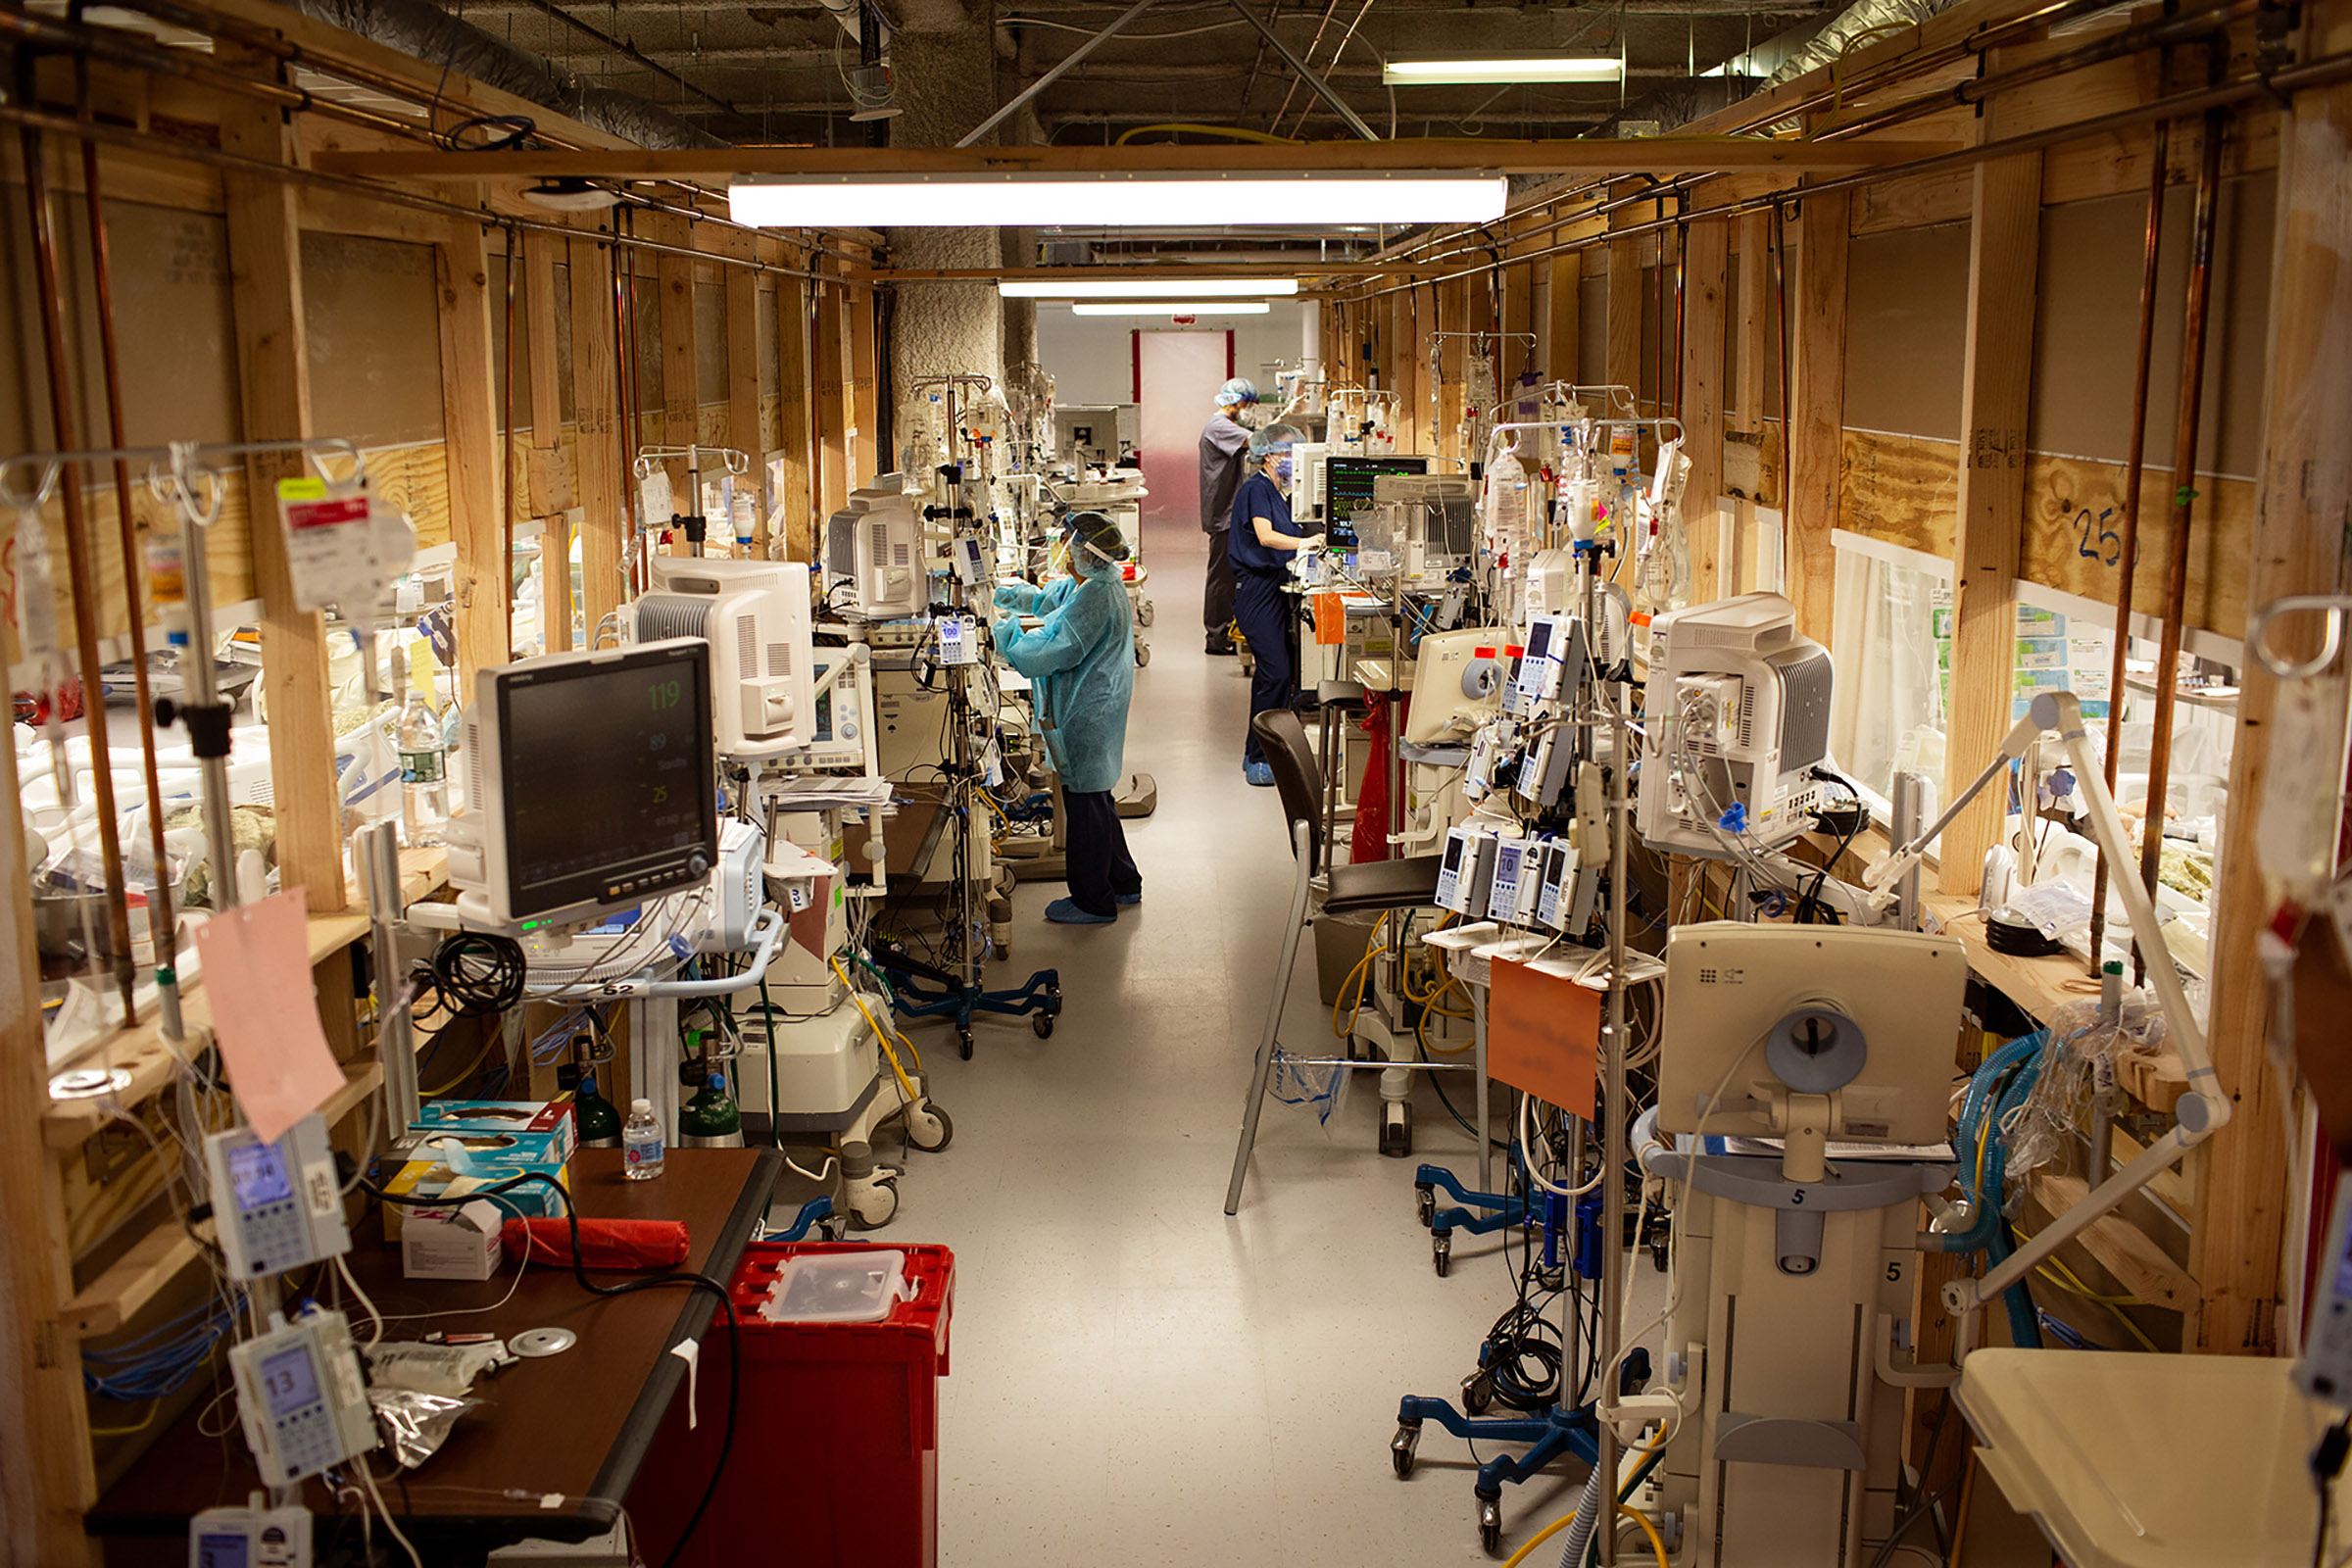 Moving the gear into the hall between the new units reduced PPE use from 20 or 30 per shift to five or six, the photographer said, at Holy Name Medical Center in Teaneck, N.J. (A small portion of this photograph is obscured to preserve the confidentiality of a patient's identity.)